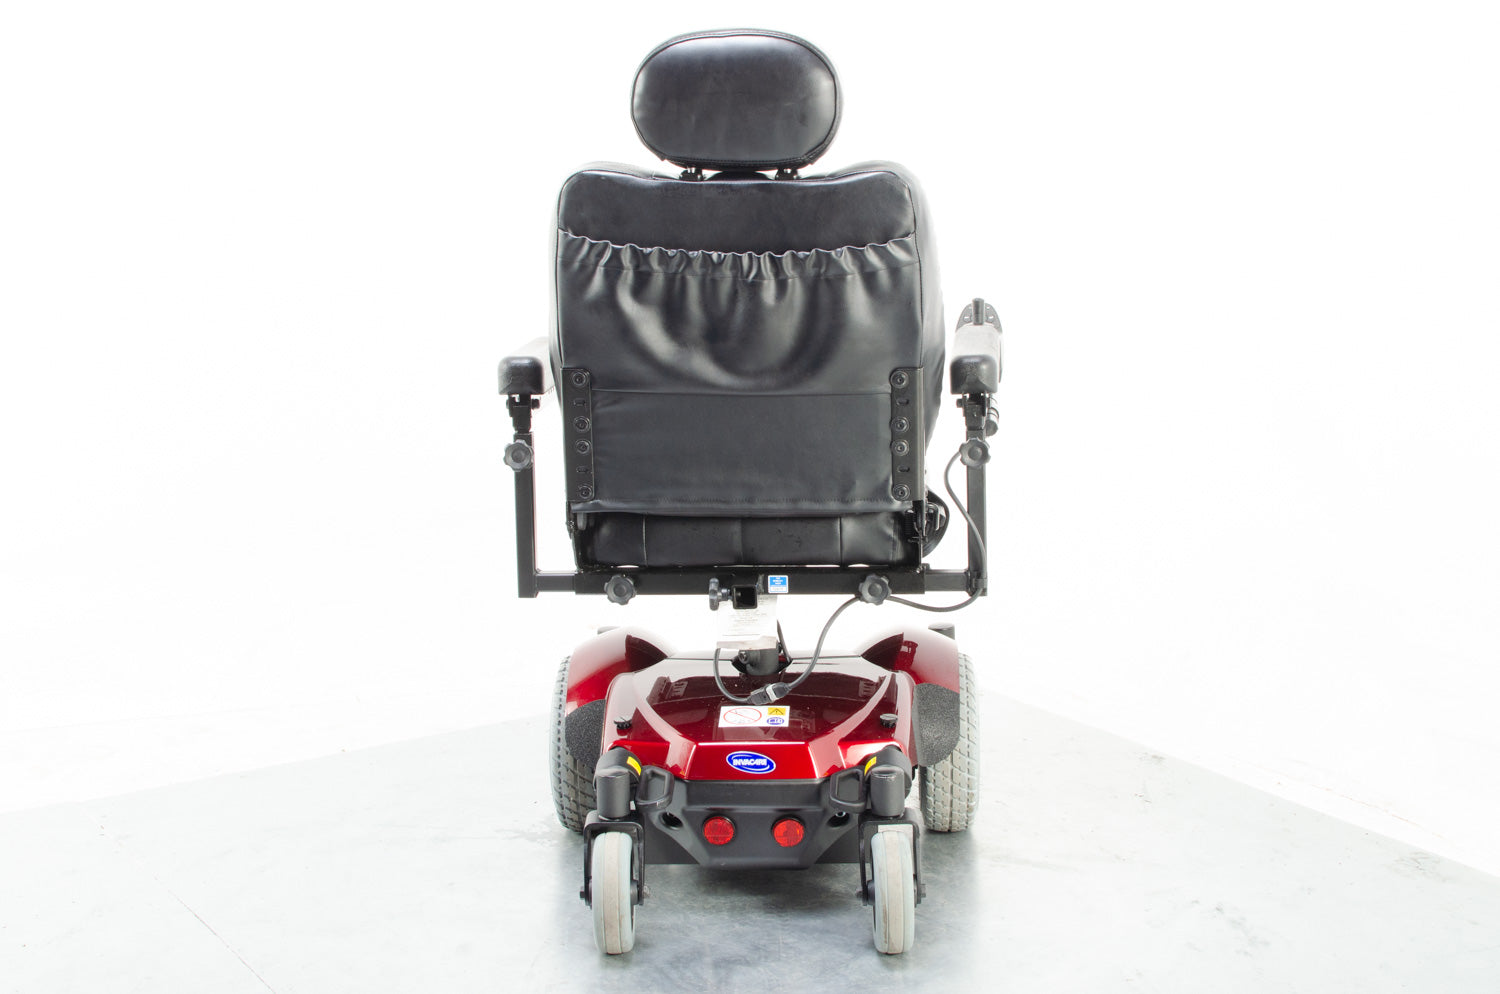 2019 Invacare Pronto M41 4mph Electric Wheelchair Powerchair in Red 19""